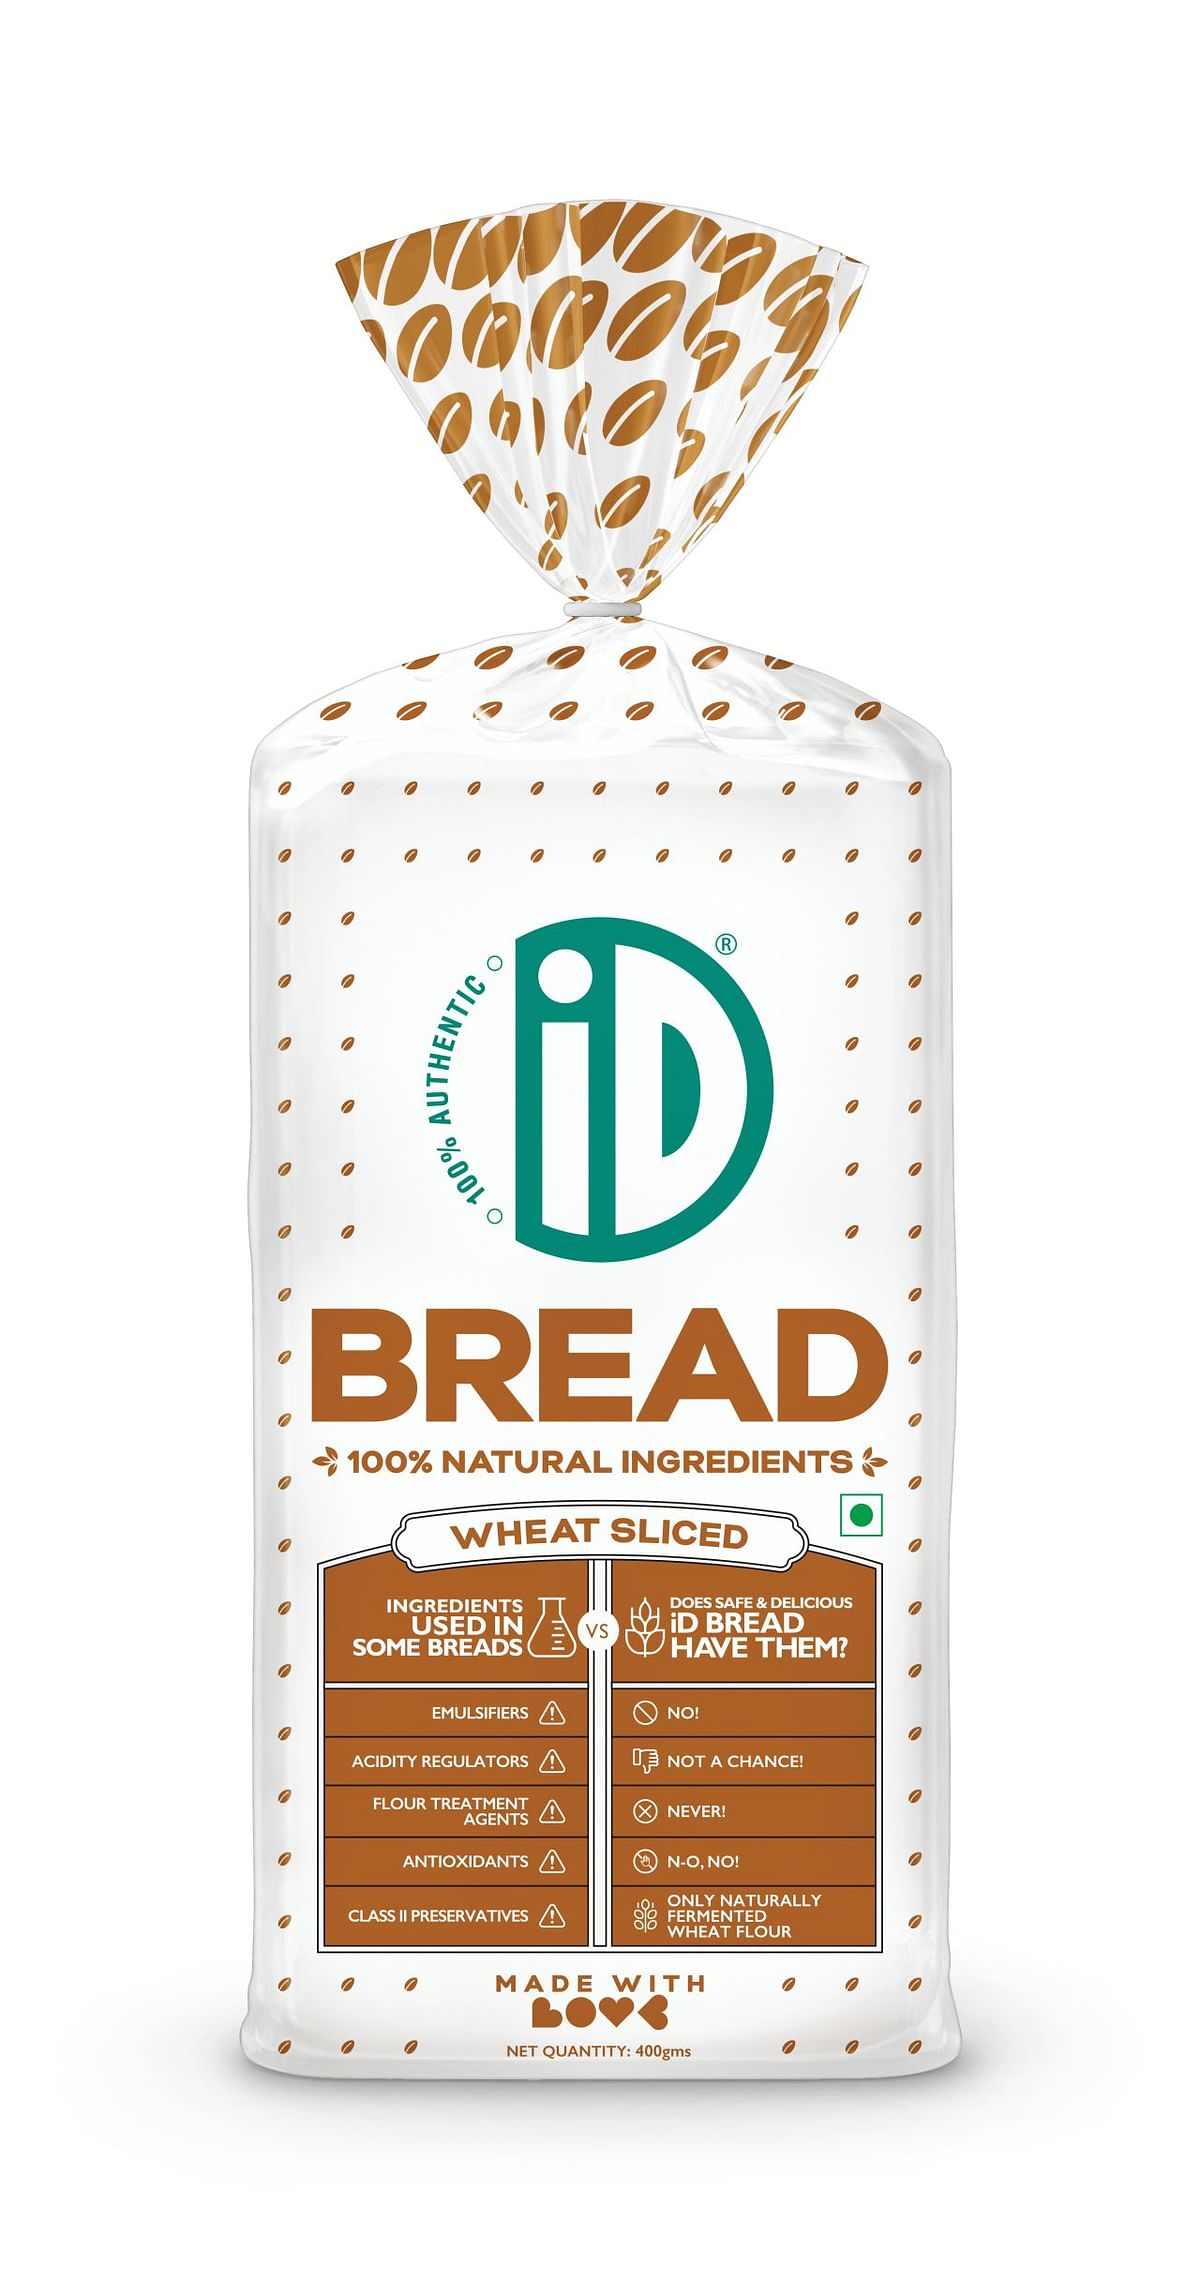 iD Fresh Food launches bread; to take on branded players, local bakeries